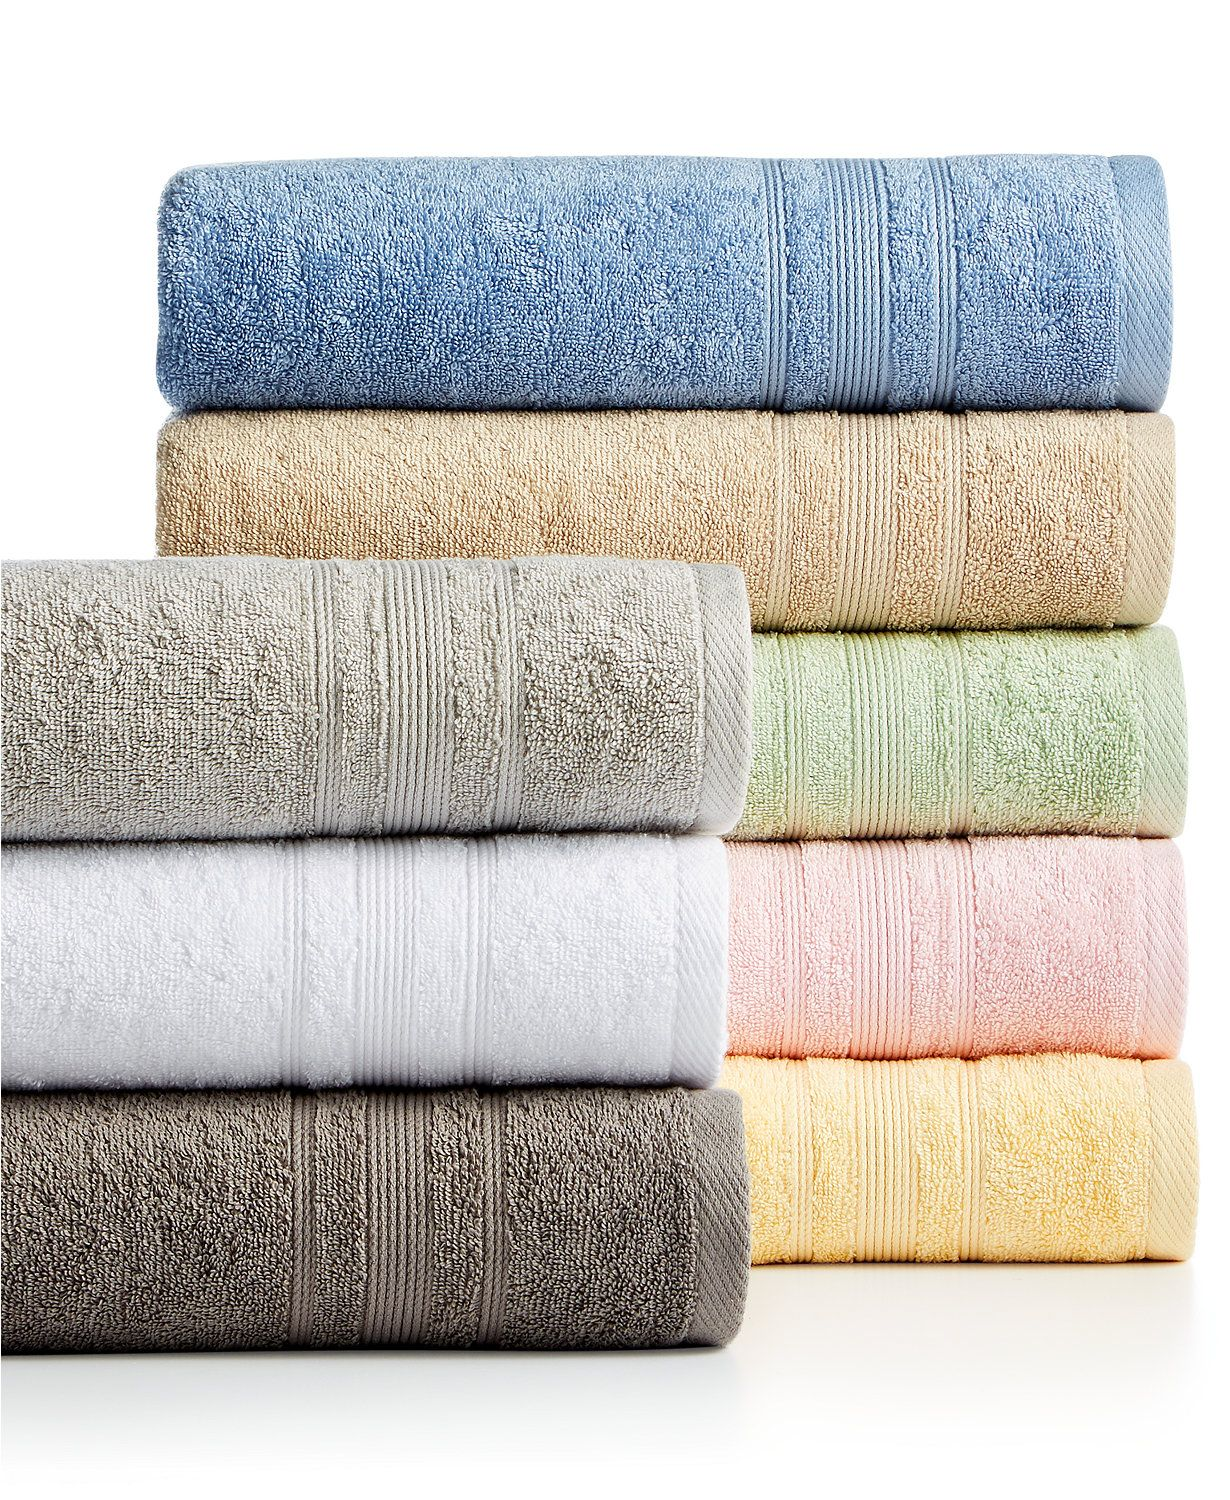 Macys Bath Towels Unique Sunham Supreme Select Cotton Bath Towel Collection  Macys Design Ideas